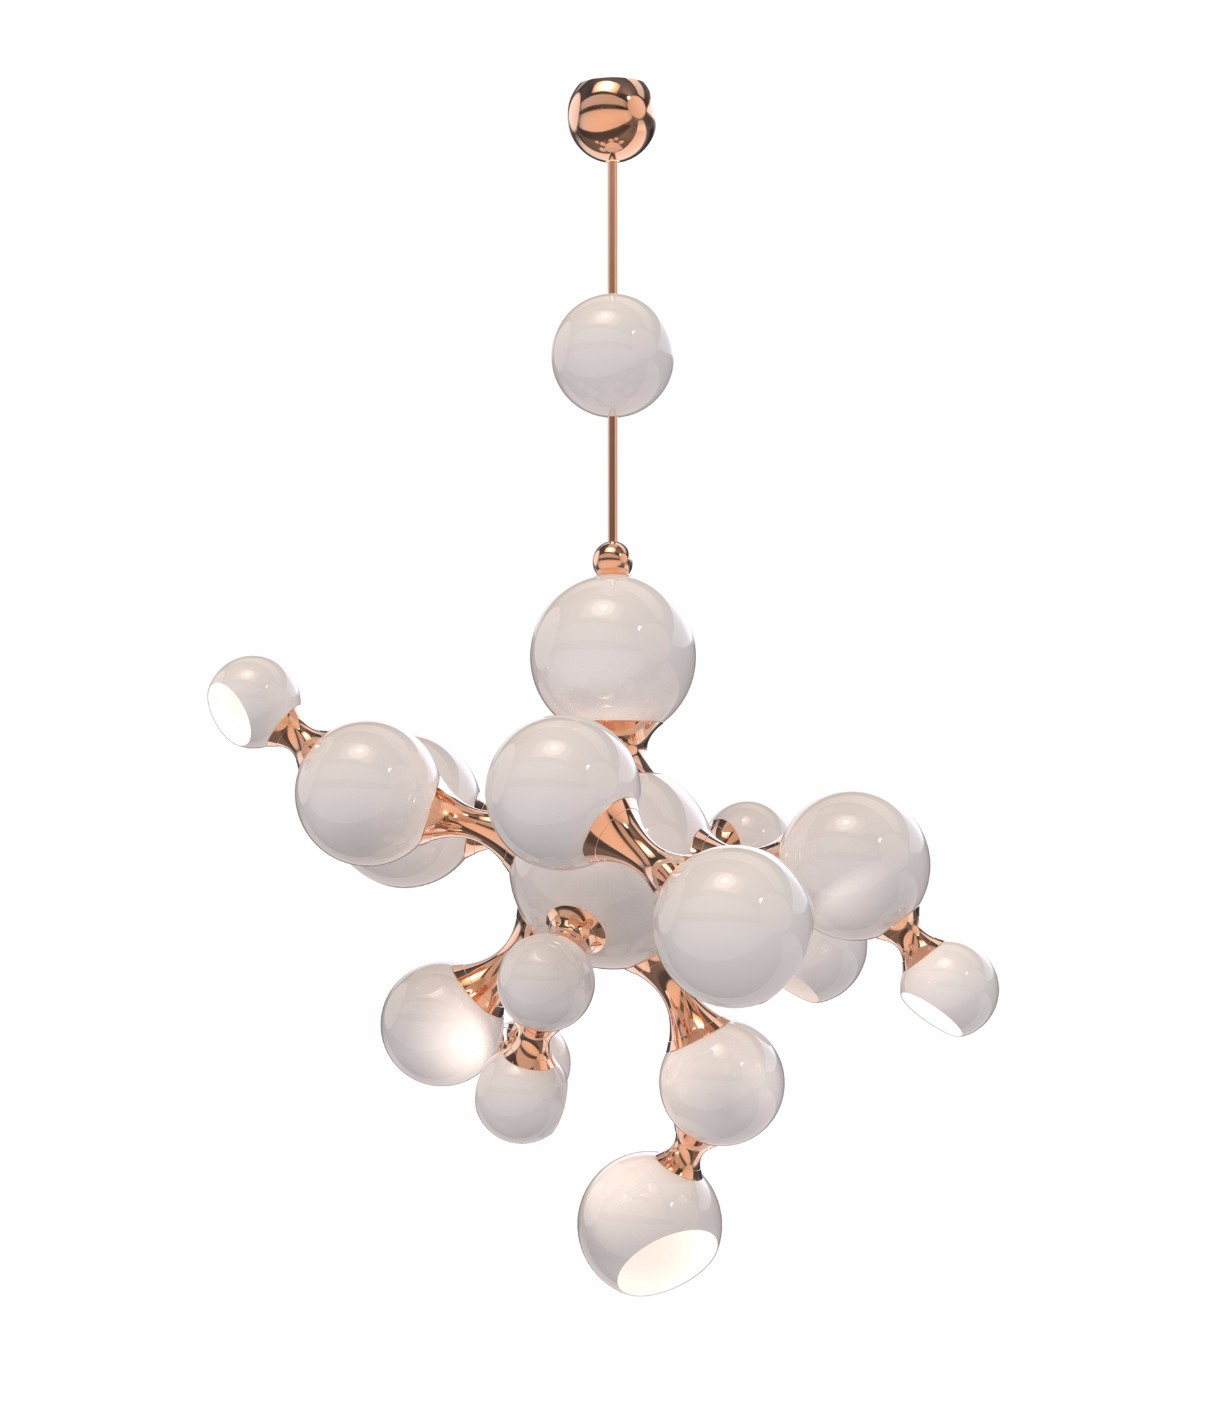 Meet Atomic The Chosen Chandelier by Philippe Model 1